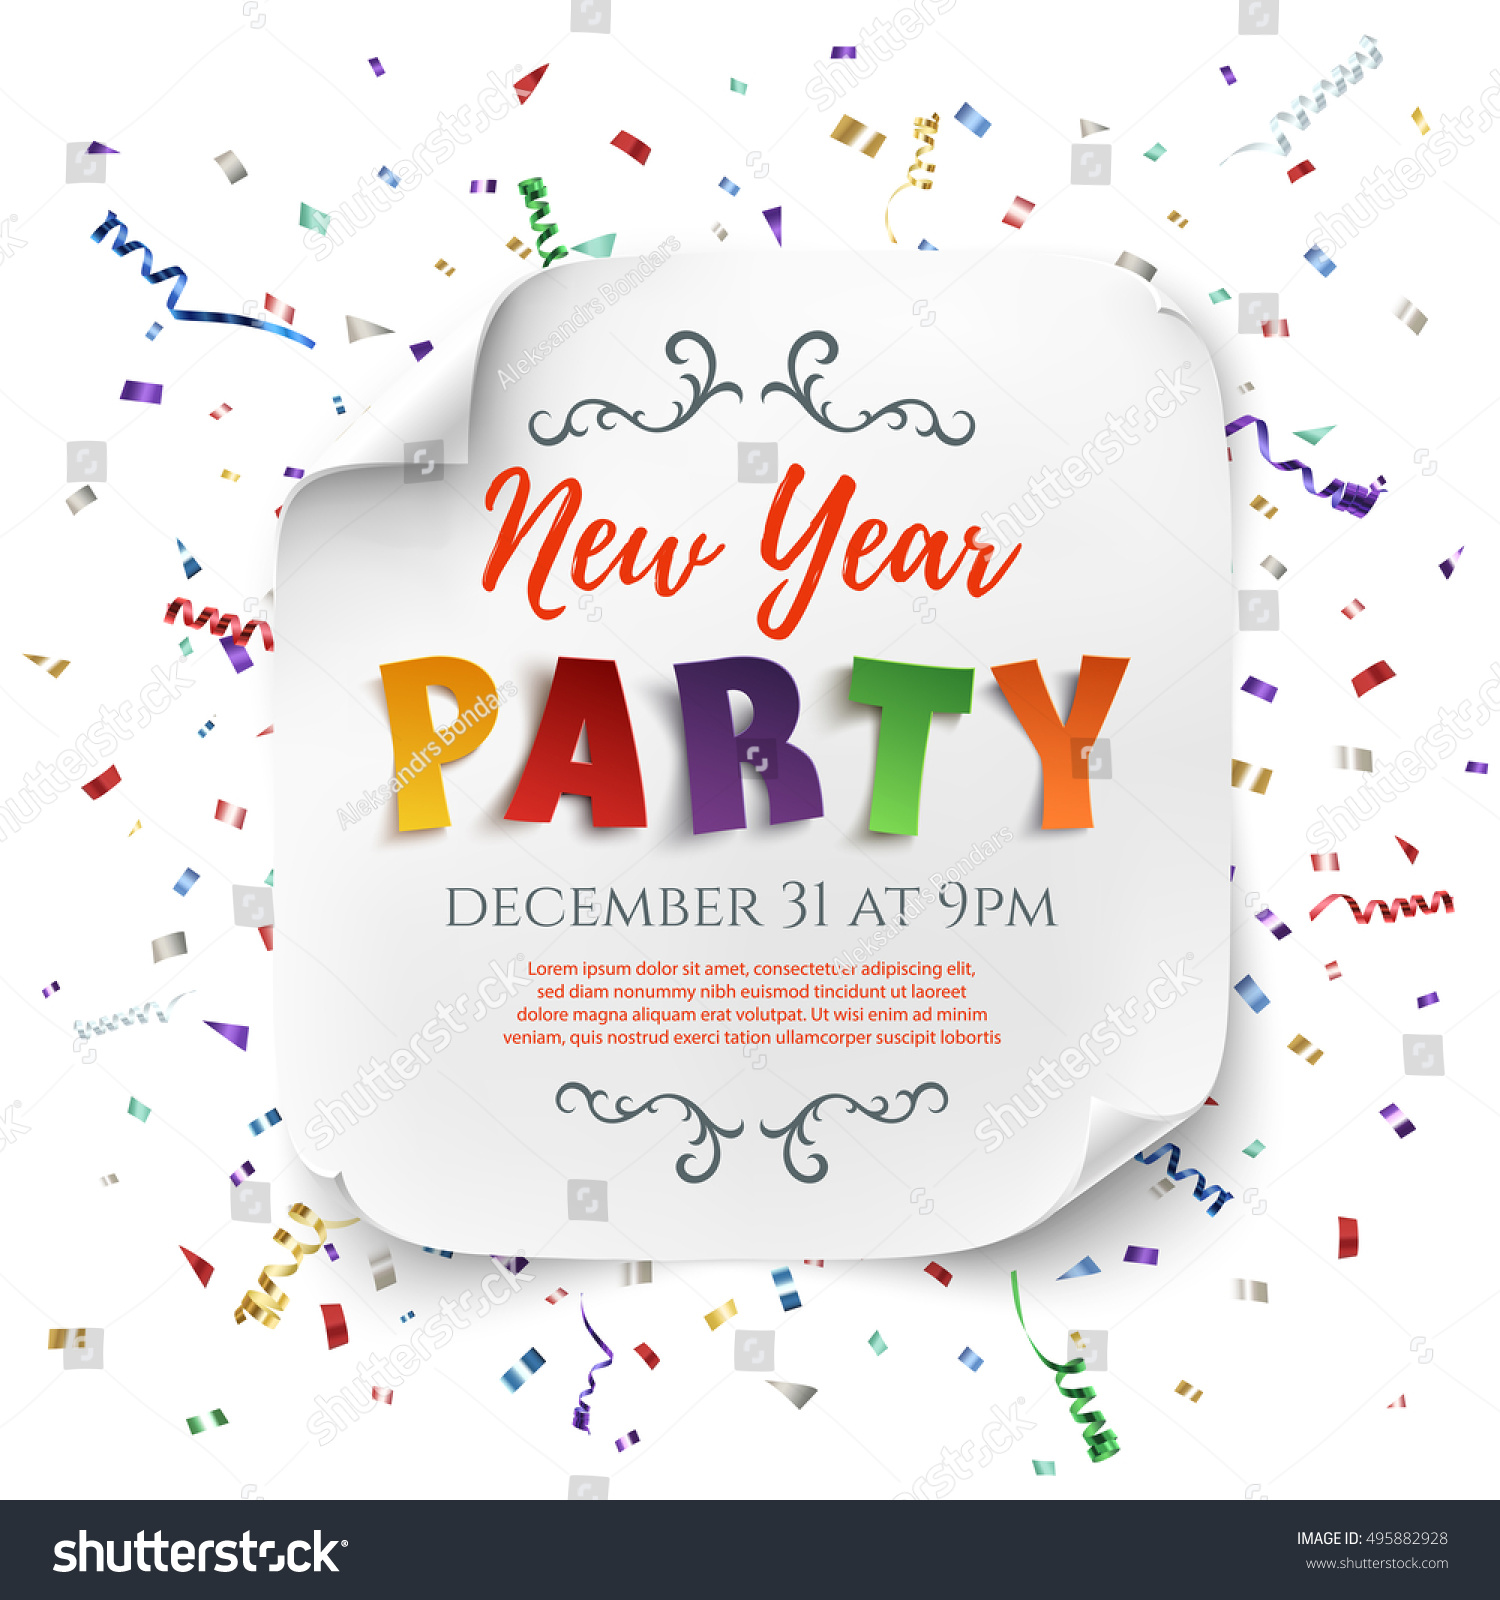 New Year Party Poster Template Ribbons Stock Vector (Royalty Free ...